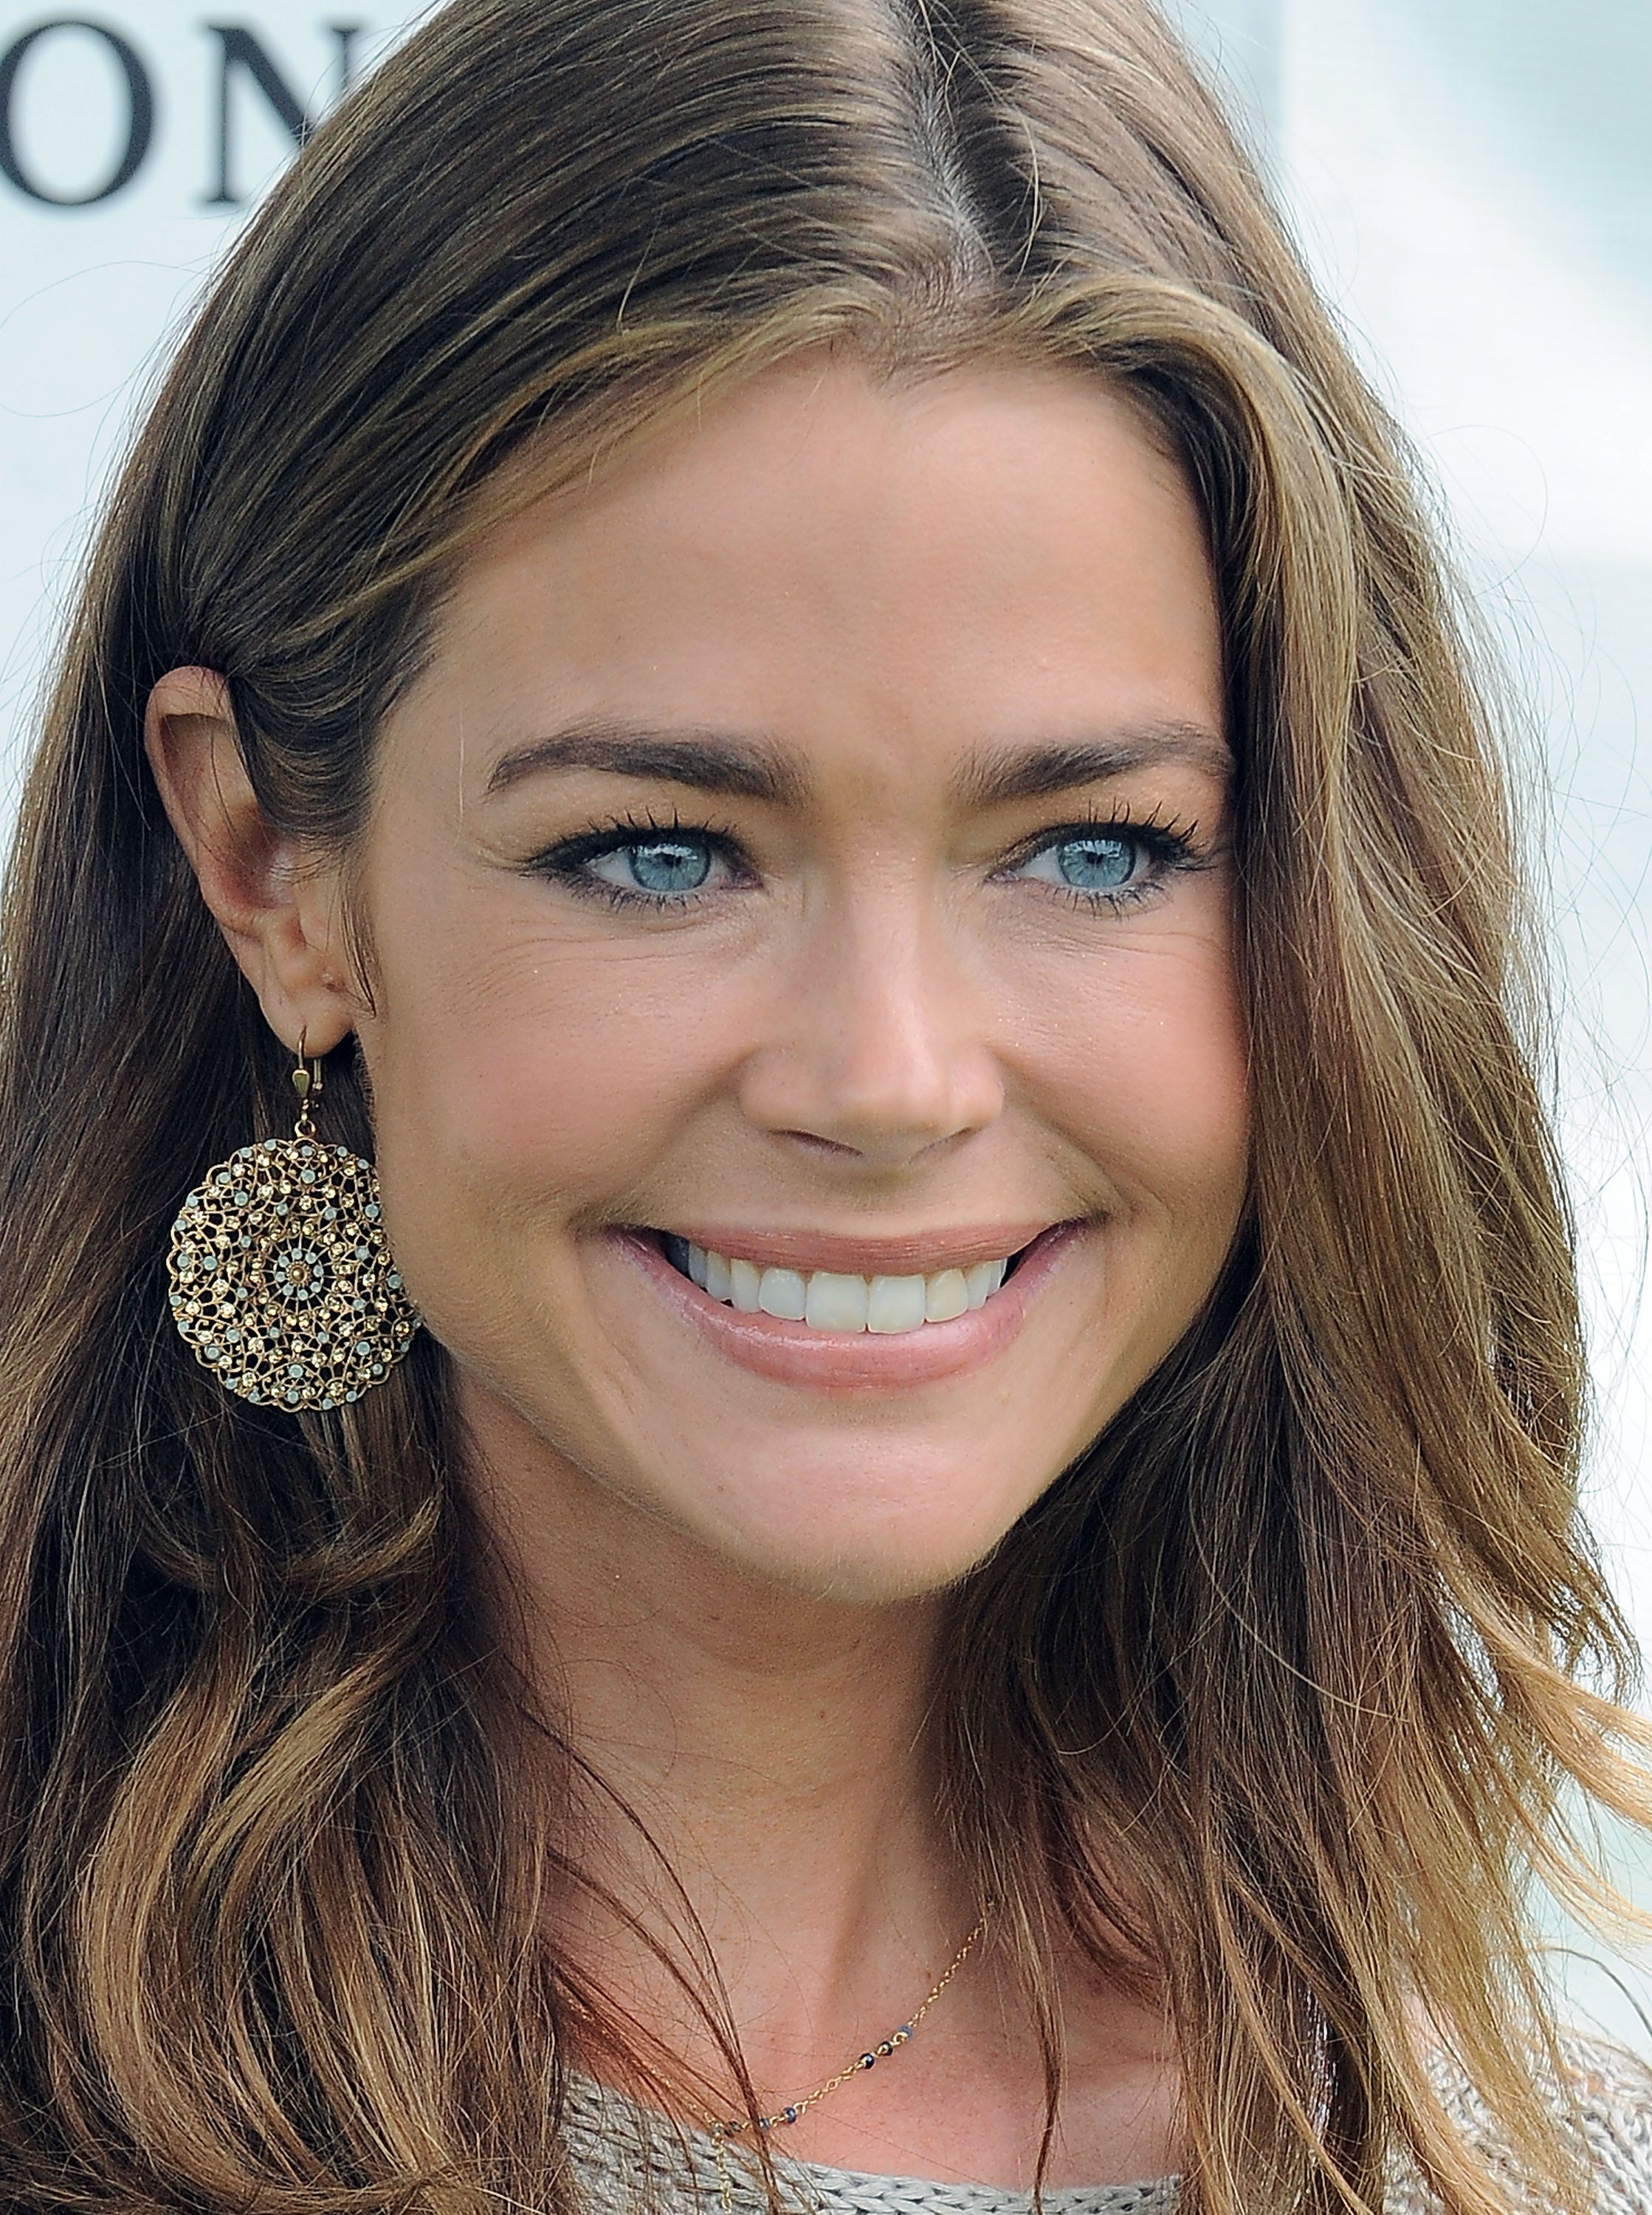 Photos Denise Richards nudes (12 photo), Sexy, Cleavage, Instagram, cameltoe 2015